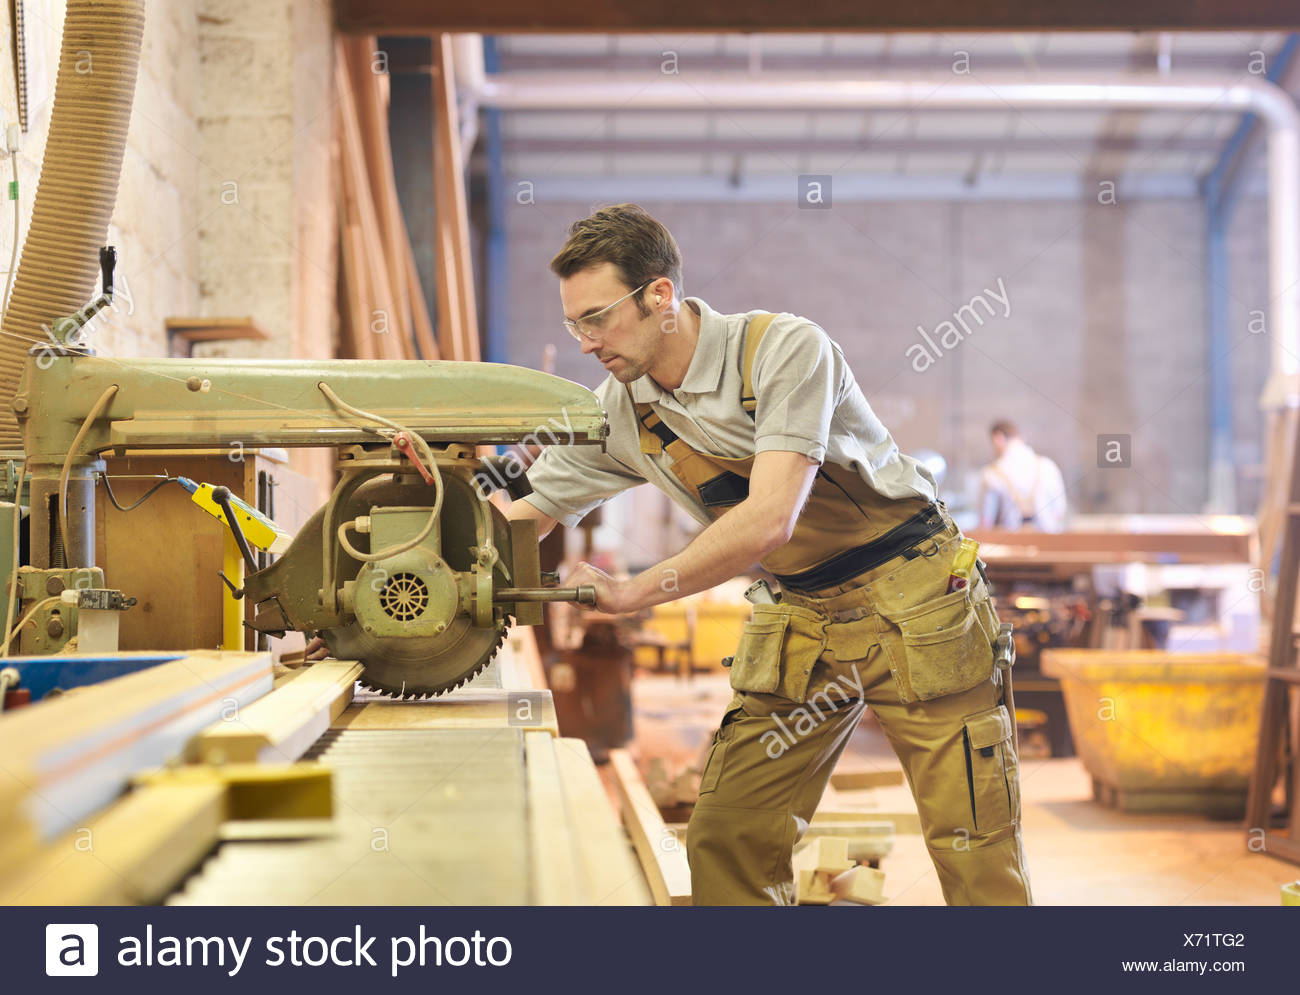 Woodworker sawing timber - Stock Image